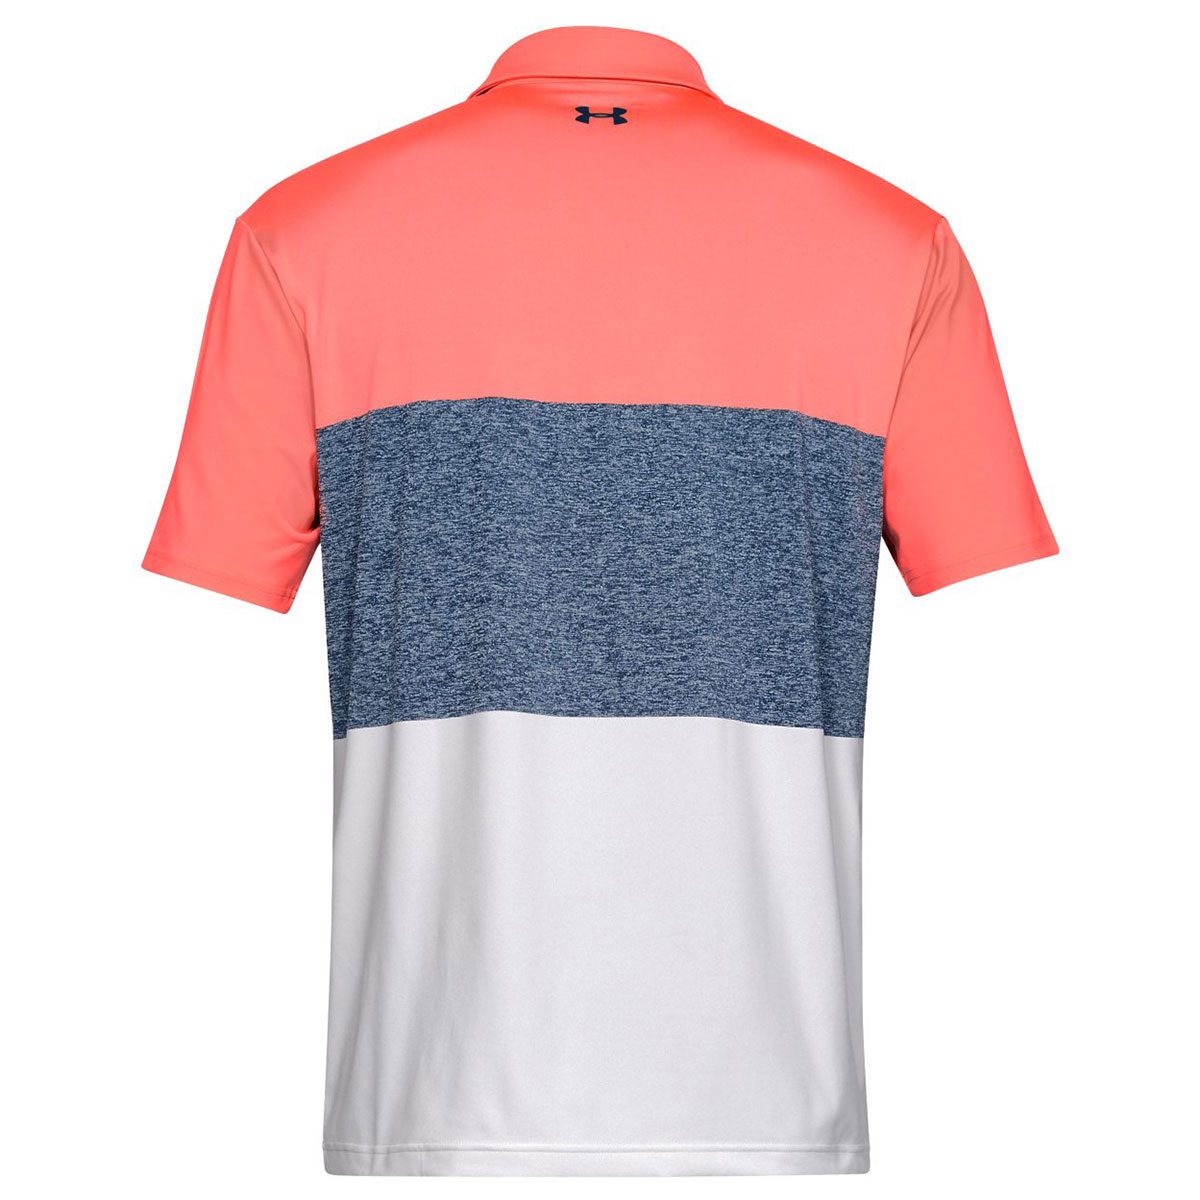 Under-Armour-Mens-2019-Playoff-Polo-2-0-Breathable-Light-Stretch-Polo-Shirt thumbnail 57